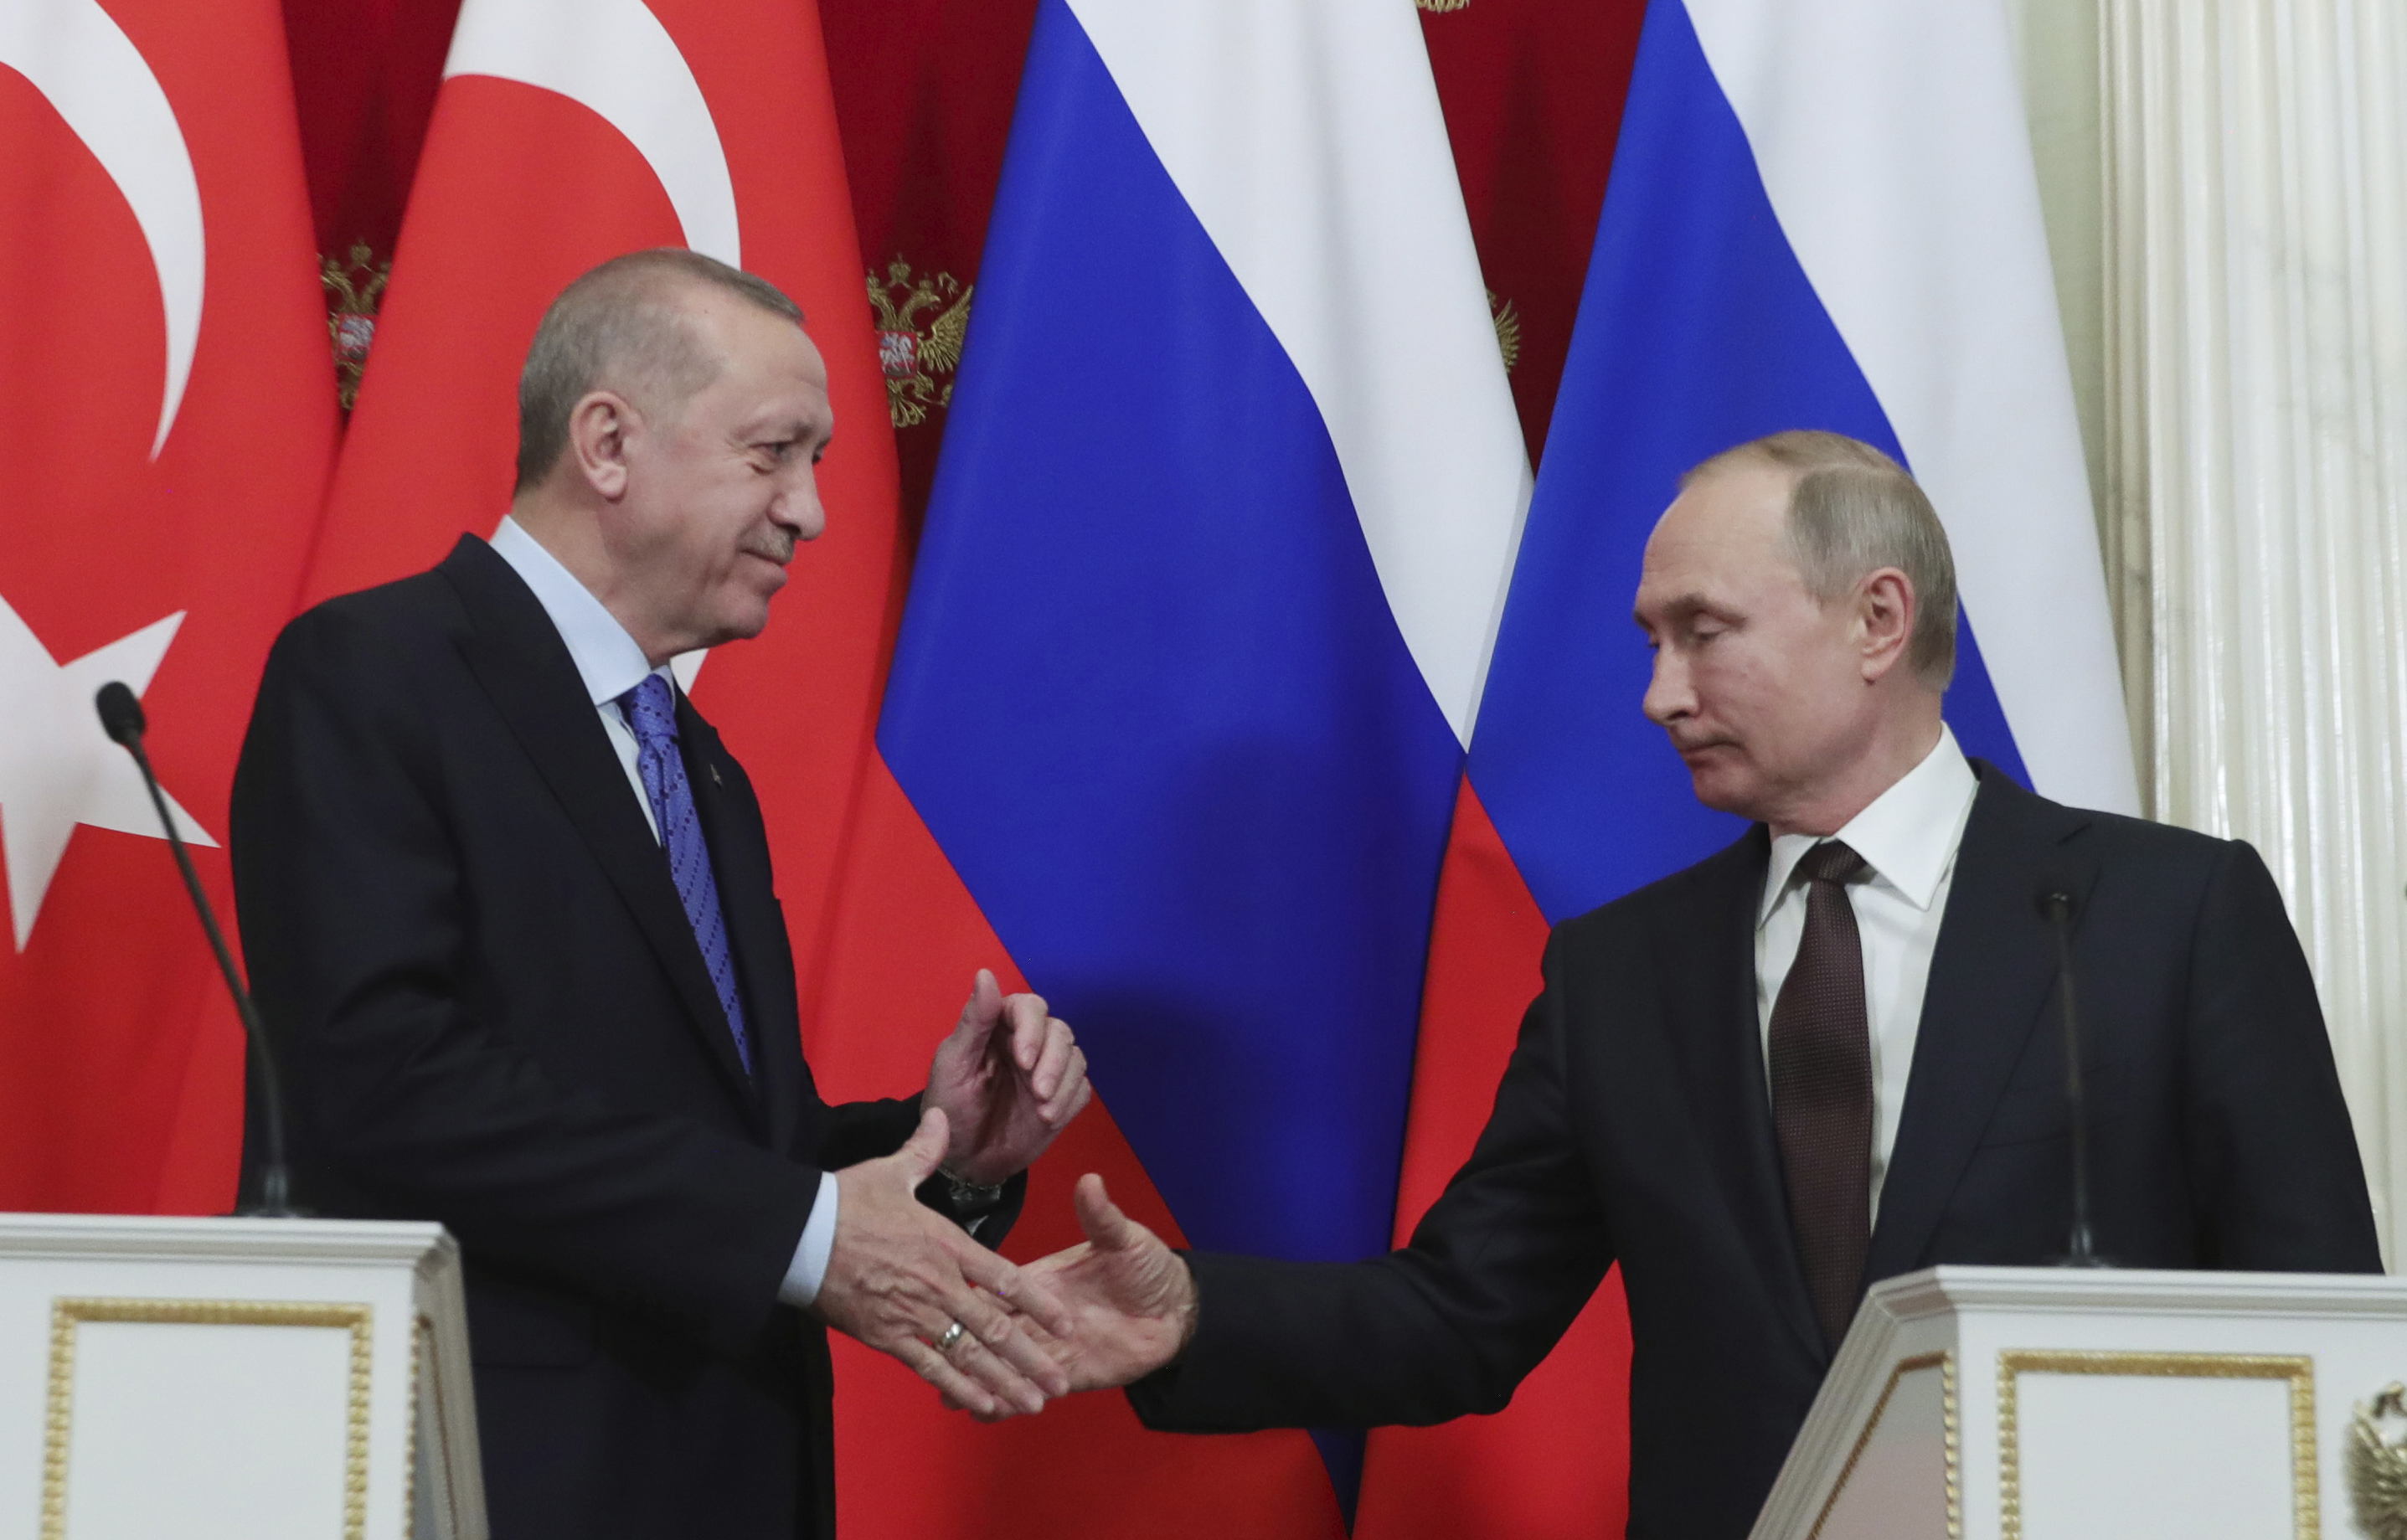 Russia's President Vladimir Putin, right, and Turkish President Recep Tayyip Erdogan shake hands after a joint news conference followed six-hour talks in the Kremlin, in Moscow, Russia on March 5, 2020.